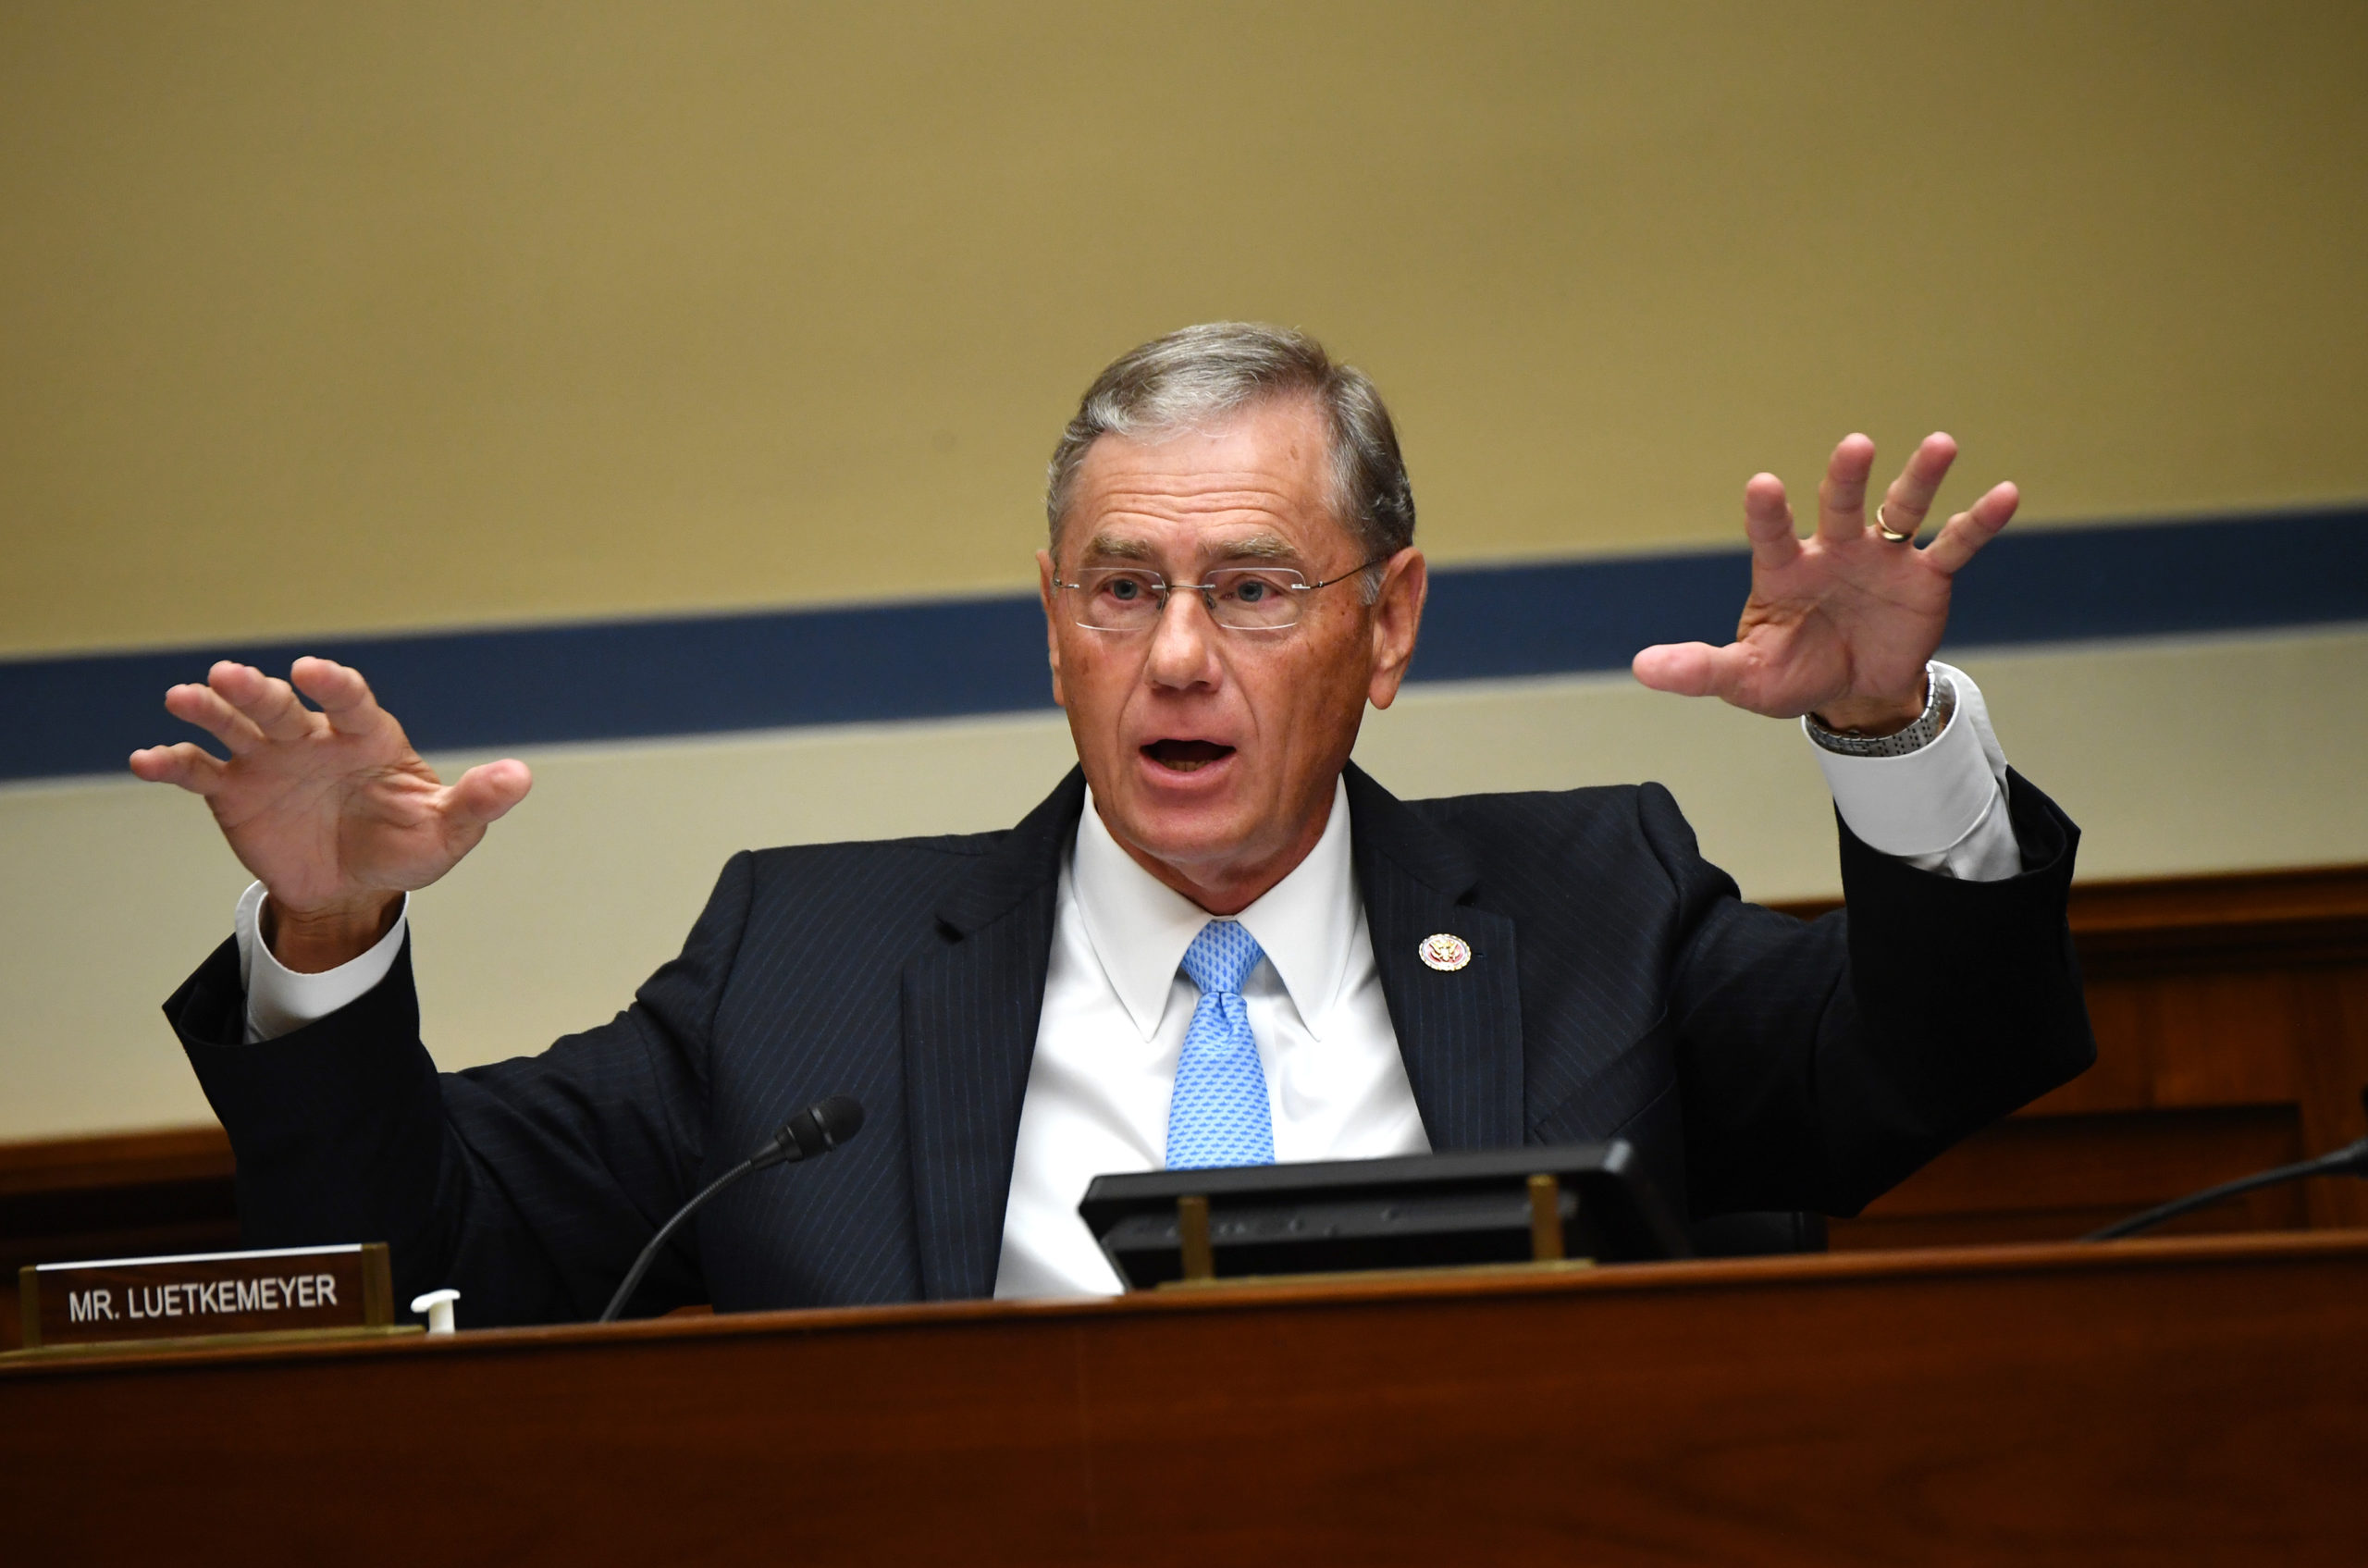 Rep. Blaine Luetkemeyer speaks during a hearing on the pandemic in July. (Kevin Dietsch/Pool/AFP via Getty Images)